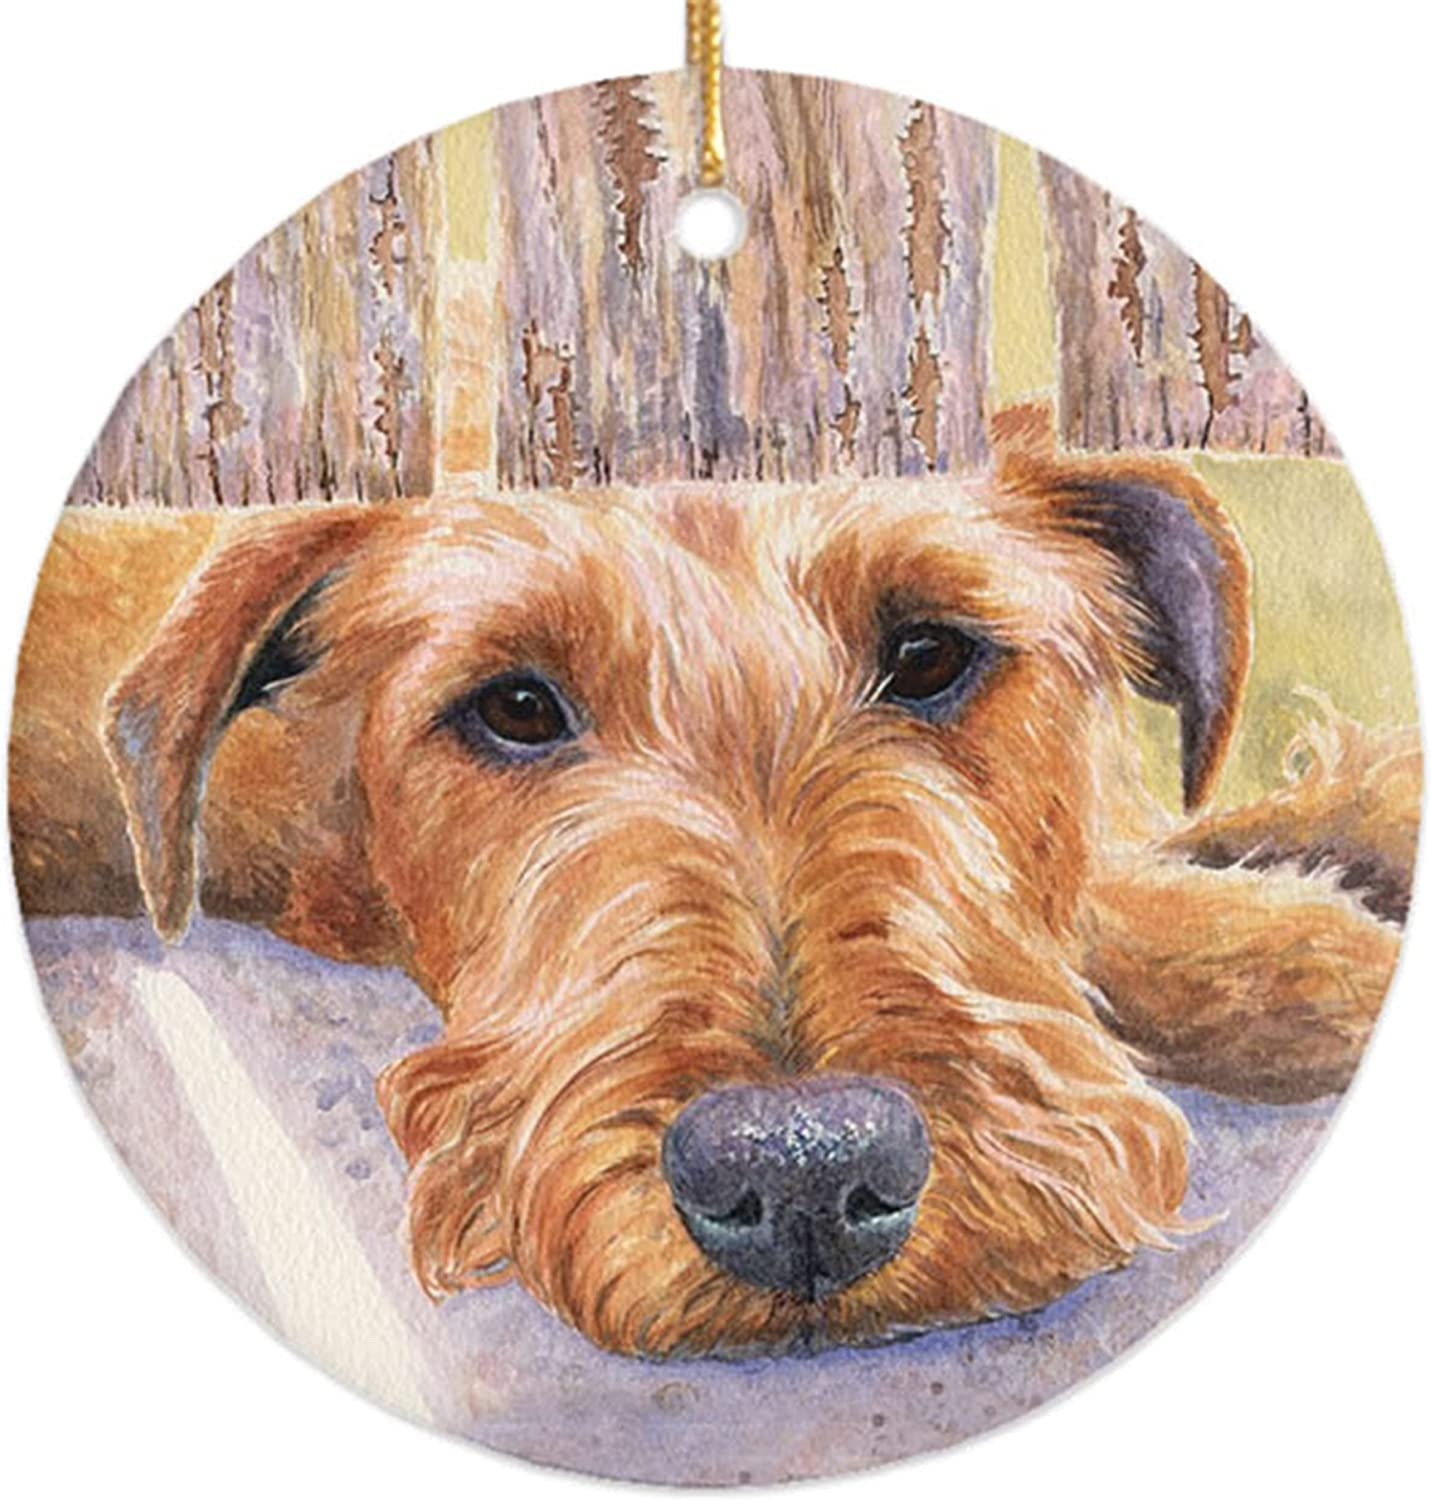 Irish Terrier Ceramic Ornament in A Gift Box by MICHAEL STEDDUM (Watching & Waiting) Awesome Irish Terrier